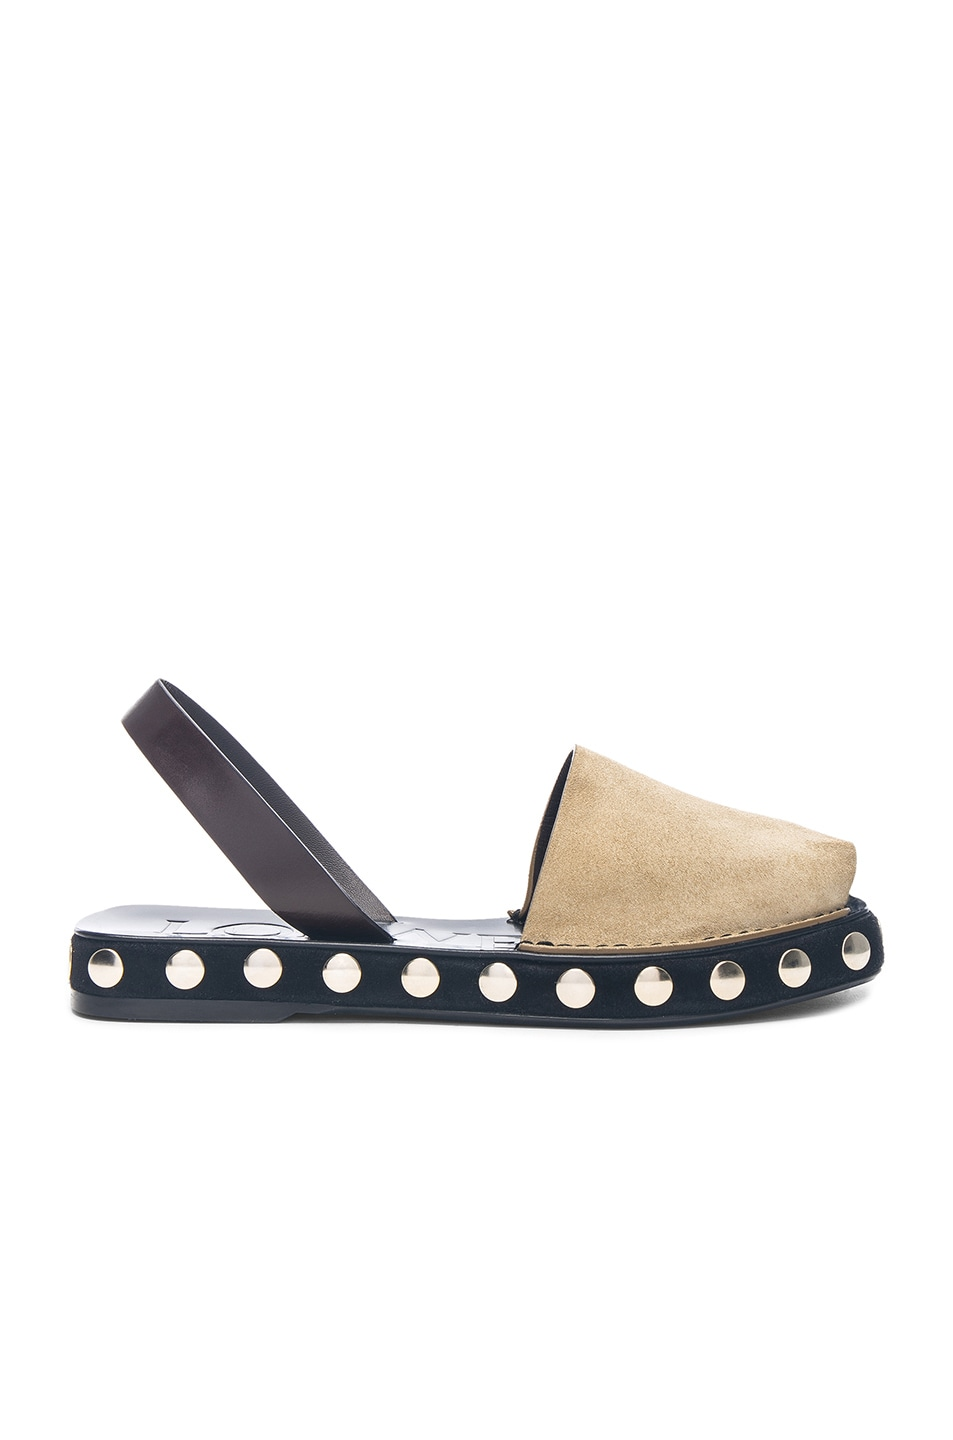 Loewe Suede slingback sandals for sale footlocker cheap low price fee shipping cheap from china fashionable cheap online PiYW8lPaf